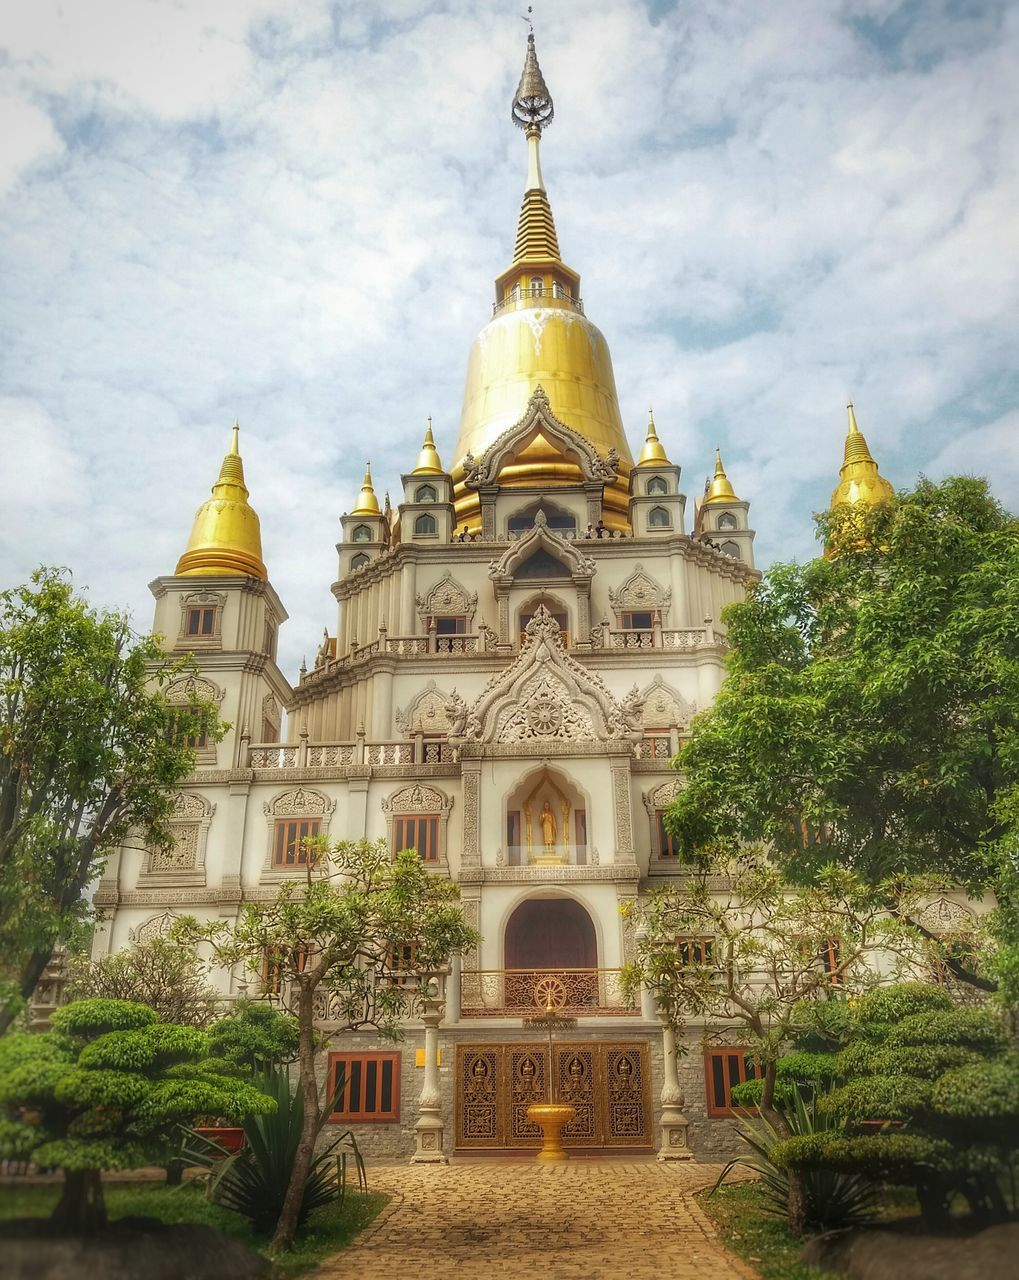 architecture, religion, place of worship, spirituality, built structure, building exterior, sky, tree, cloud - sky, gold colored, day, low angle view, dome, history, travel destinations, no people, outdoors